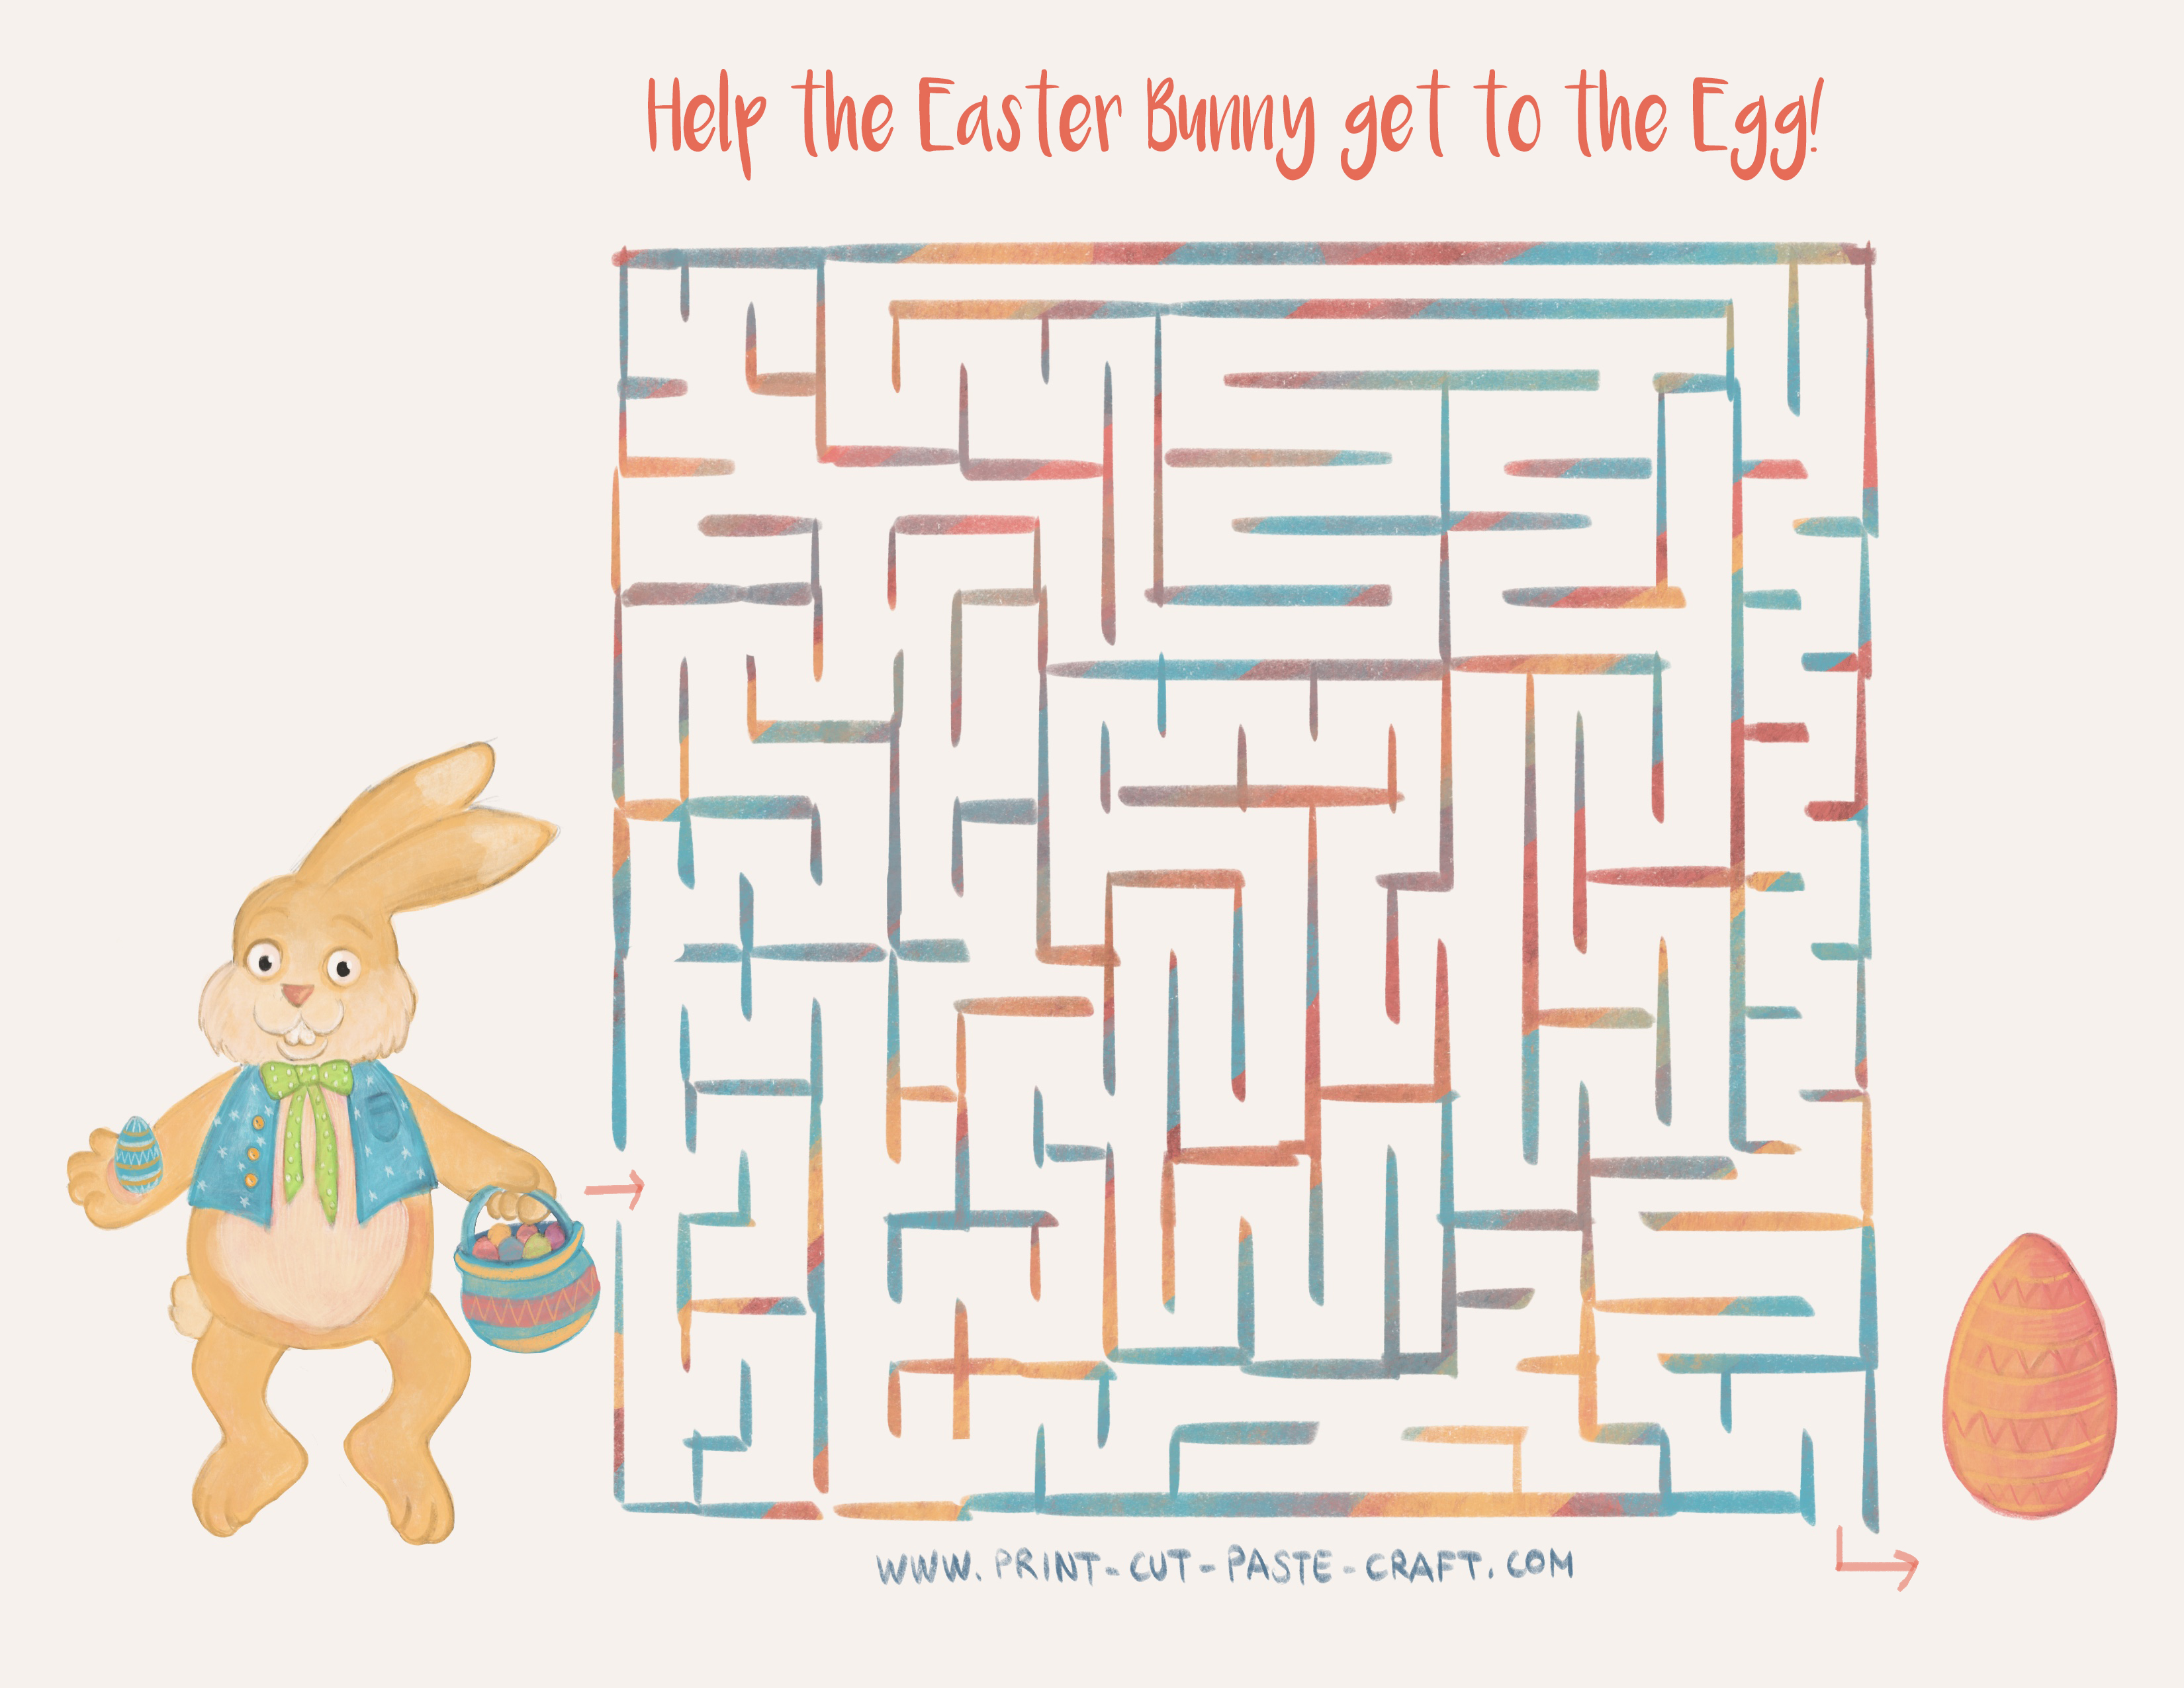 Free Printable Easter Activity: Help the Bunny reach the egg through the maze!